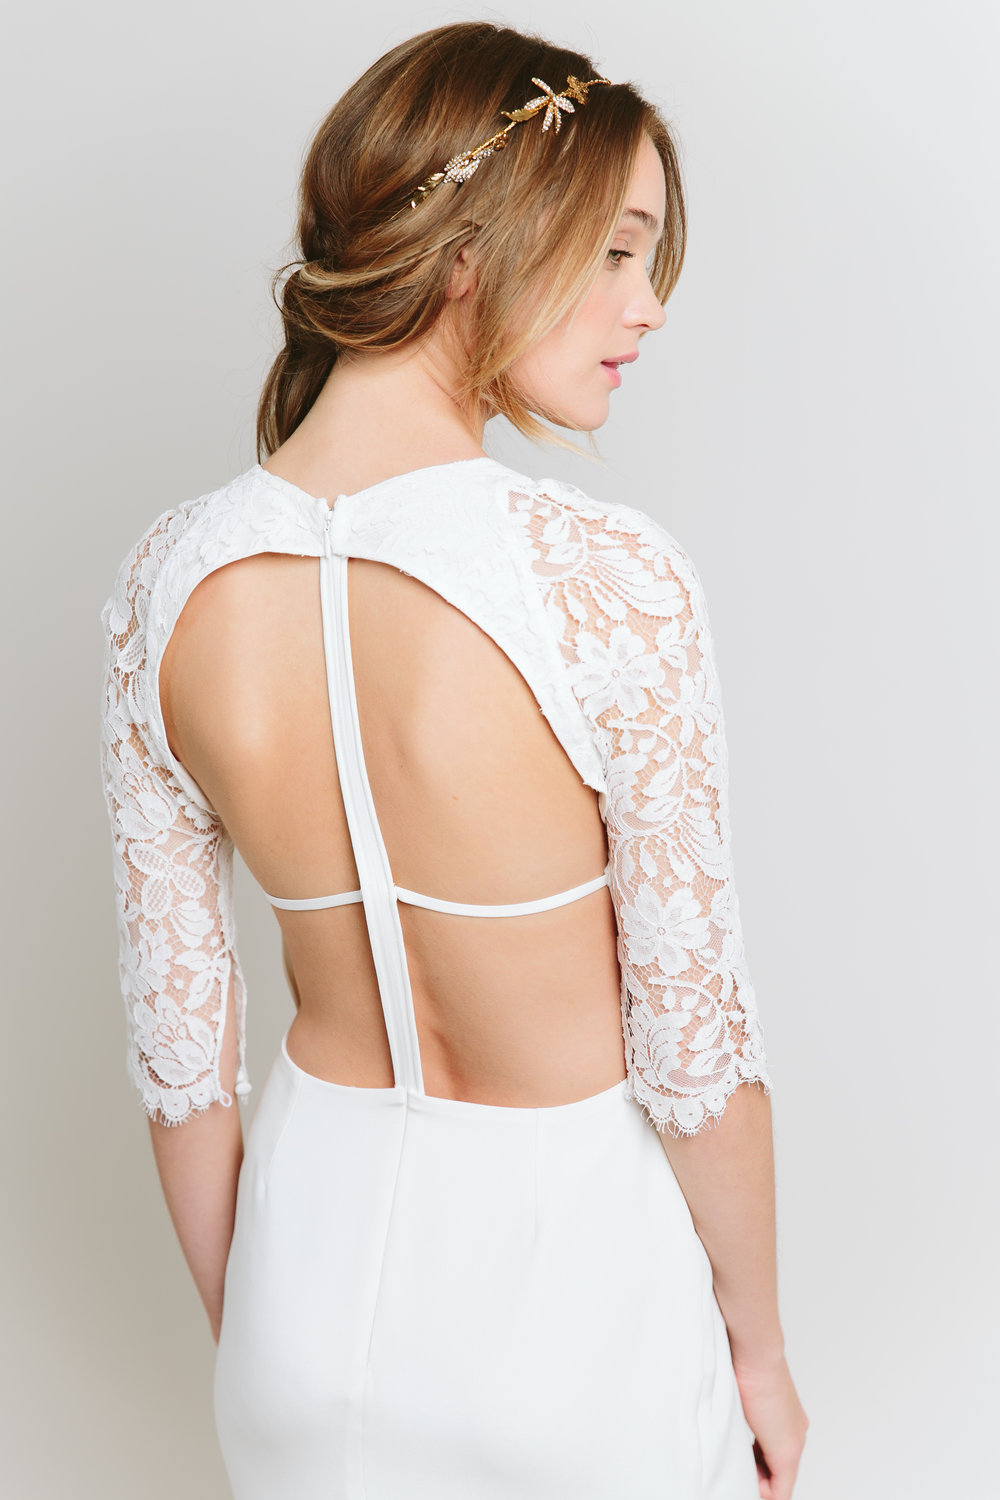 sarah seven unique back wedding dress